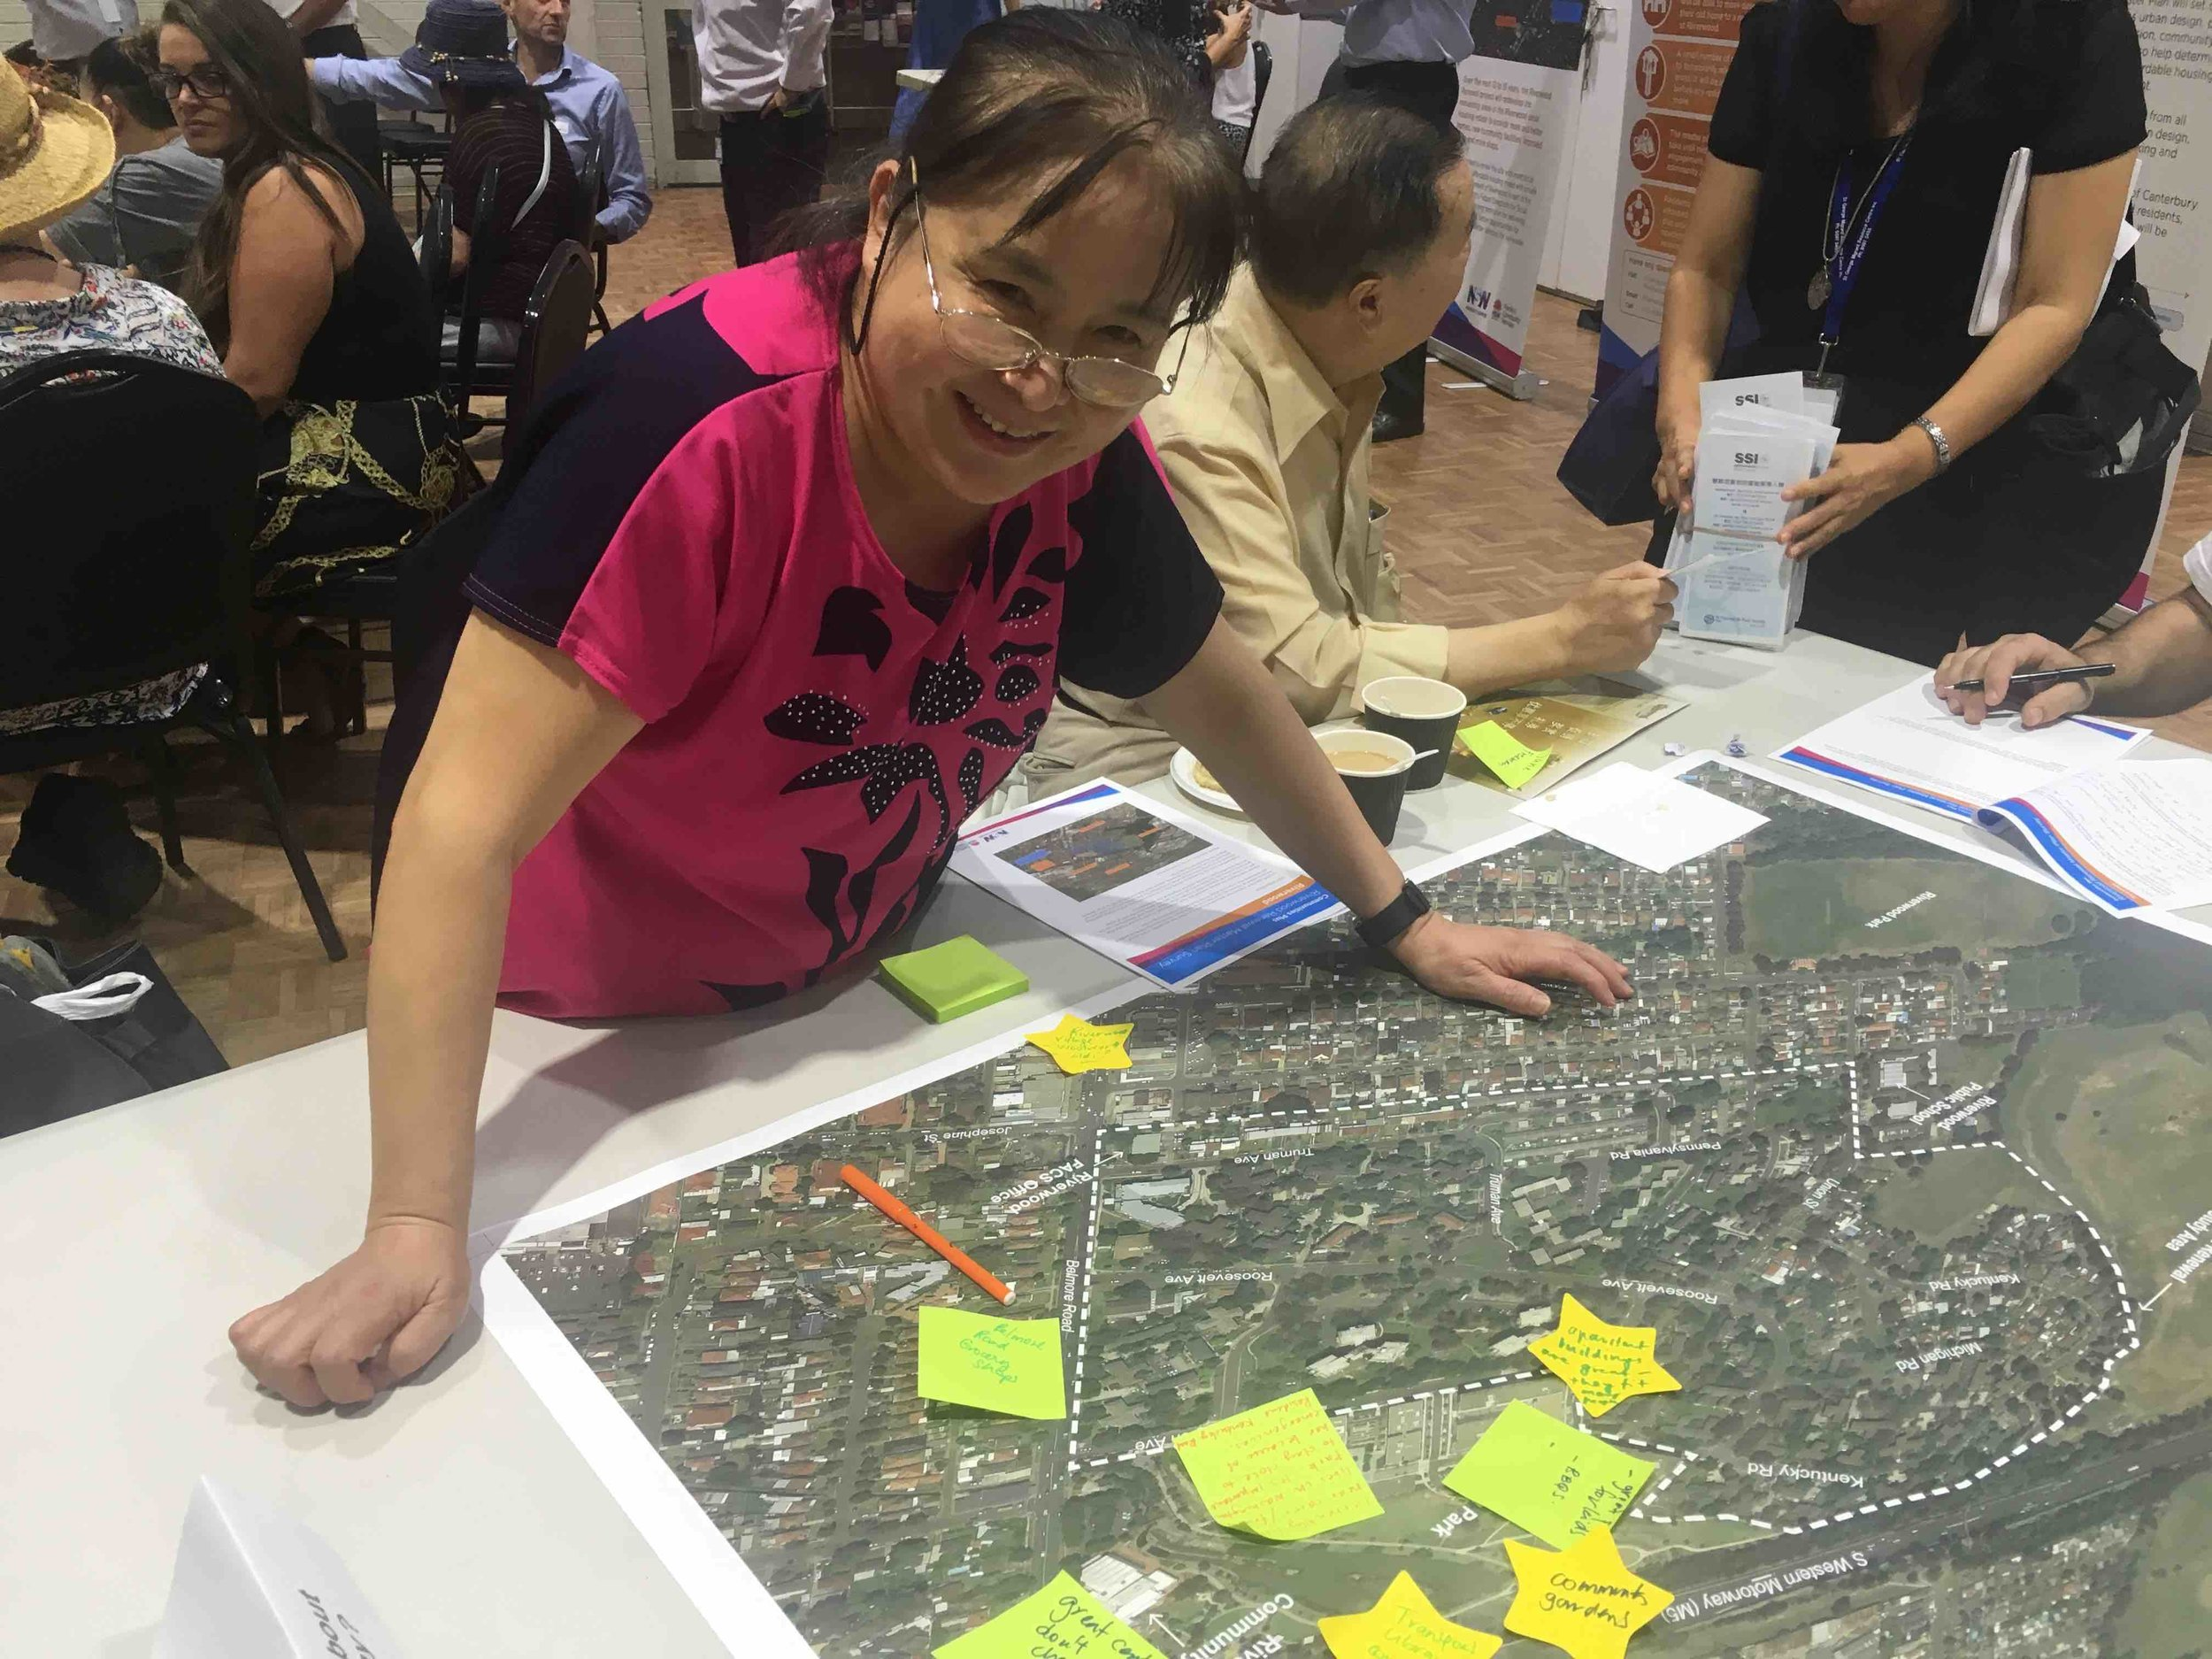 RIVERWOOD MASTERPLAN PROJECT STAKEHOLDER ENGAGEMENT AND SOCIAL PLANNING  Land and Housing Corporation   We are delivering stakeholder engagement and social planning for the renewal of  ...more